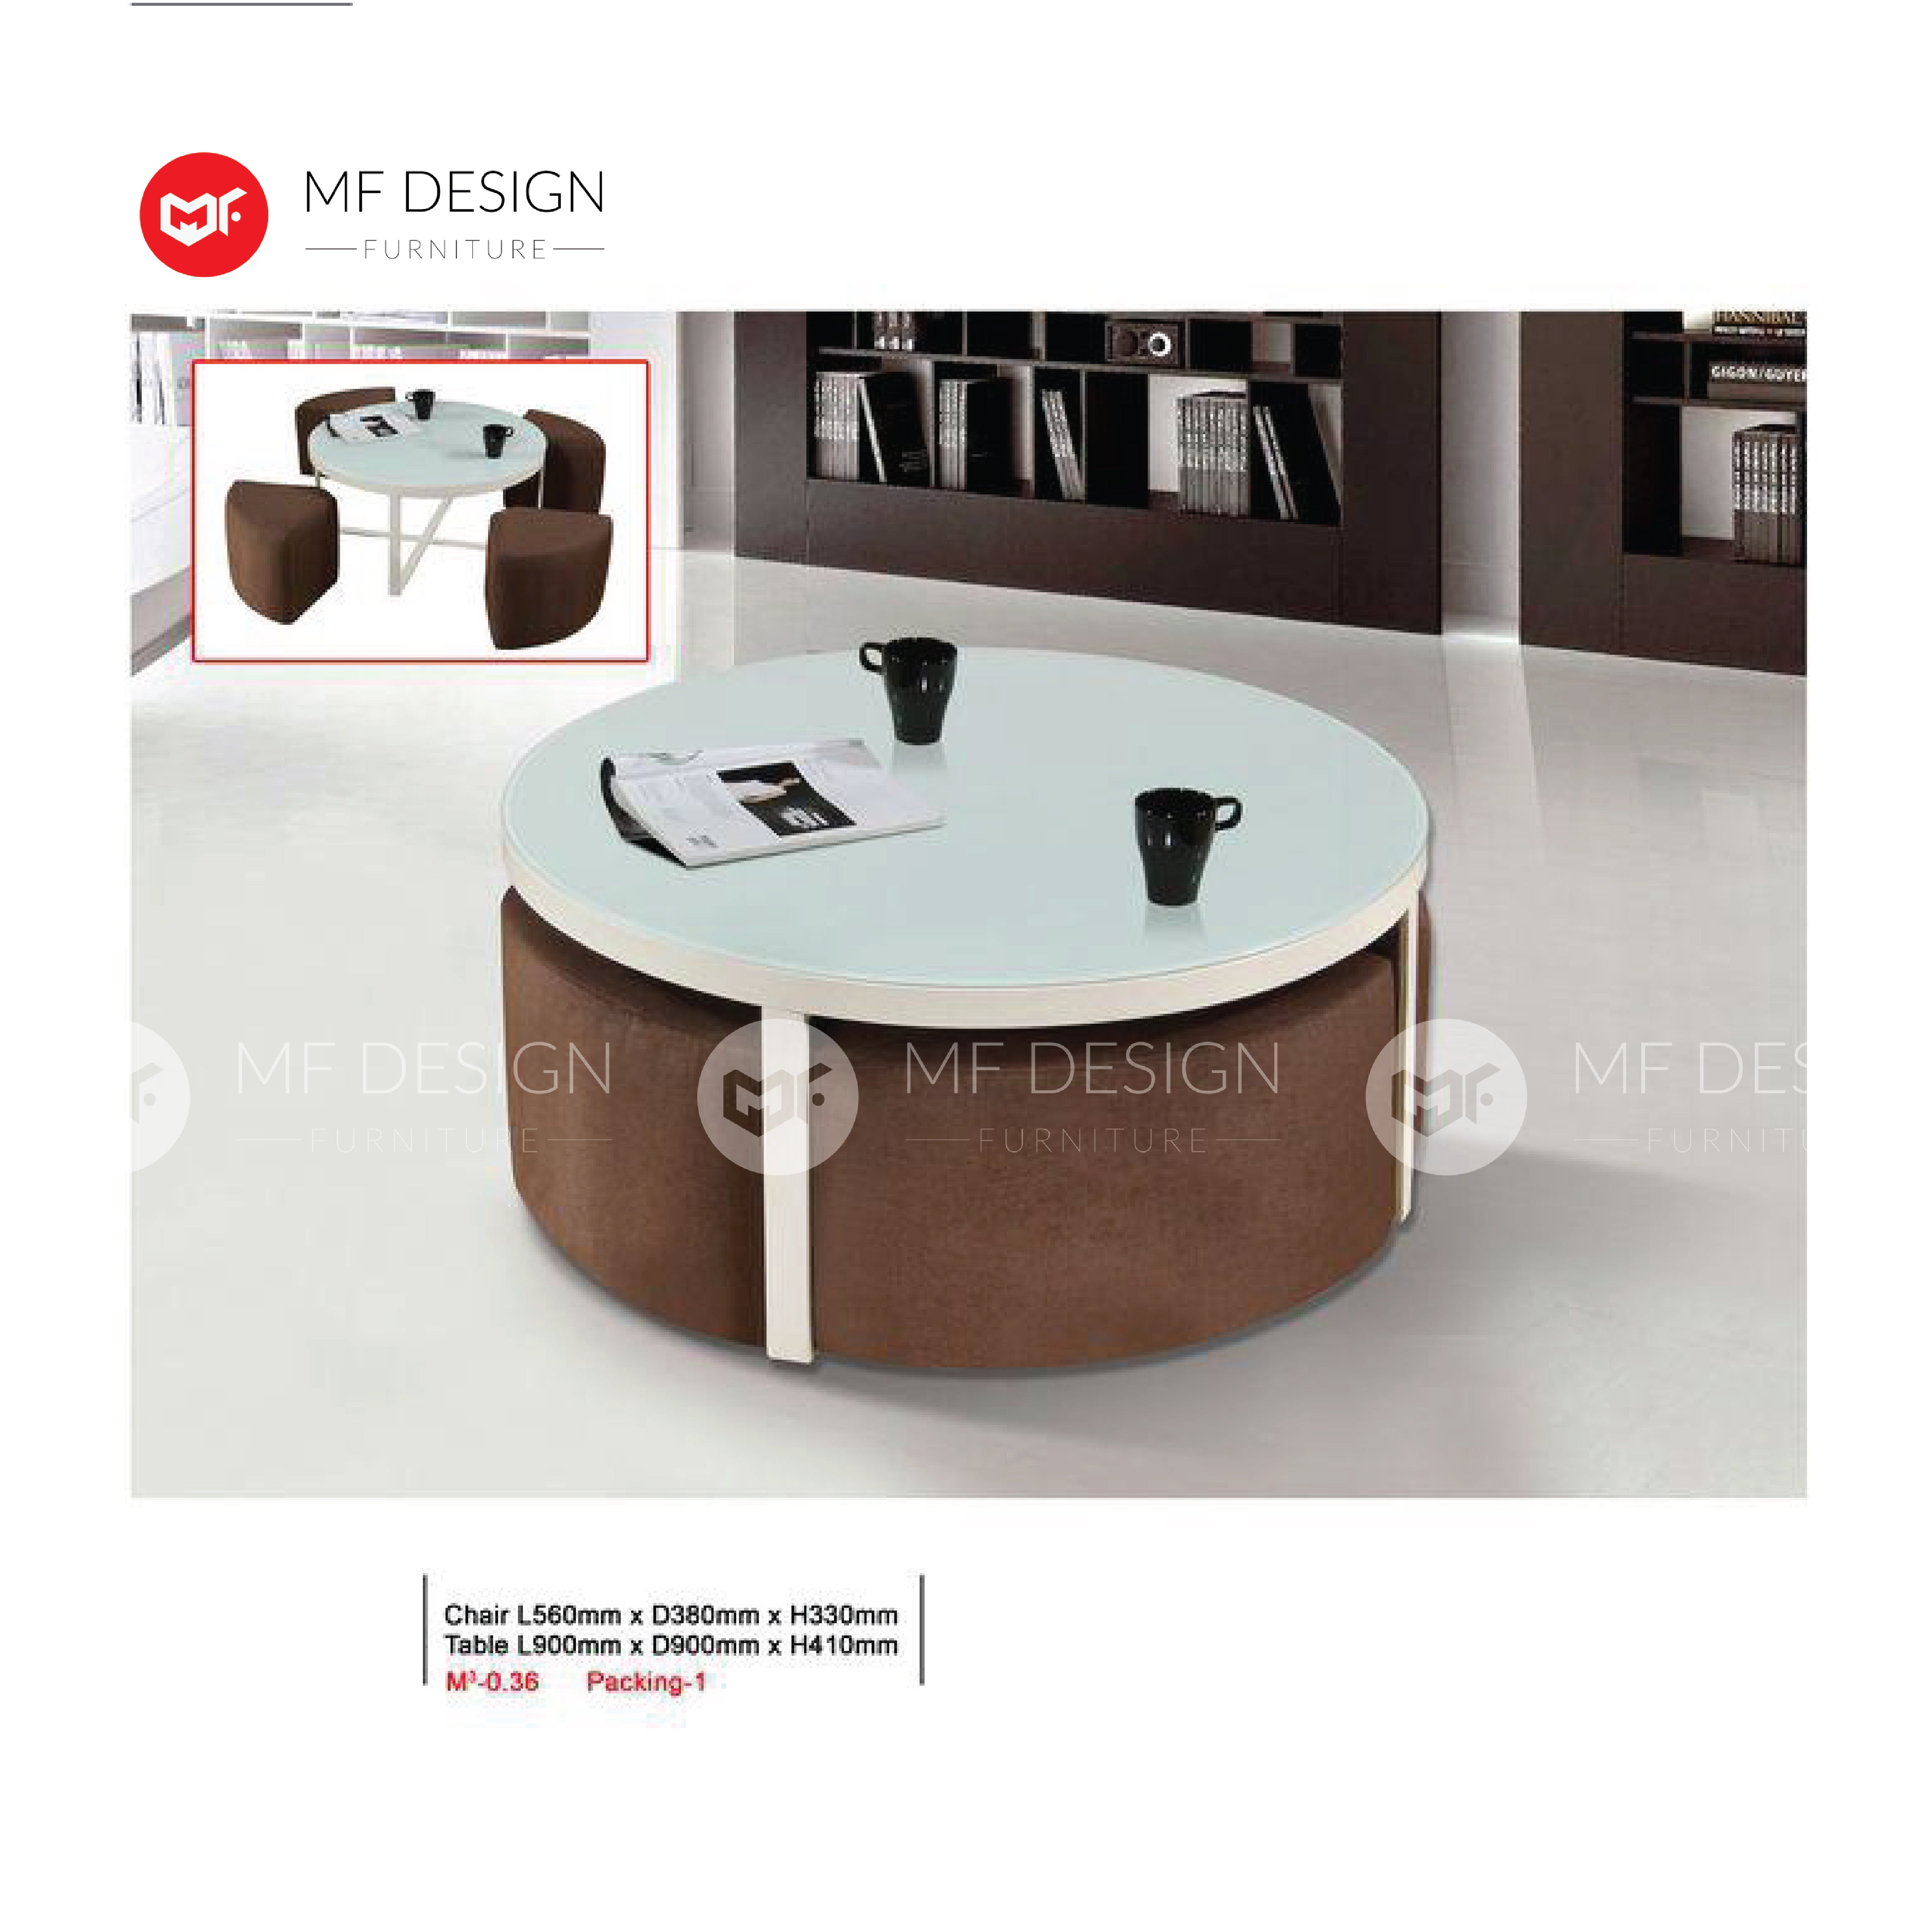 mf design claire Coffee Table / Lounge Table / Side Table / Relax Table / Hall Table / Tea Table / Drinks Table